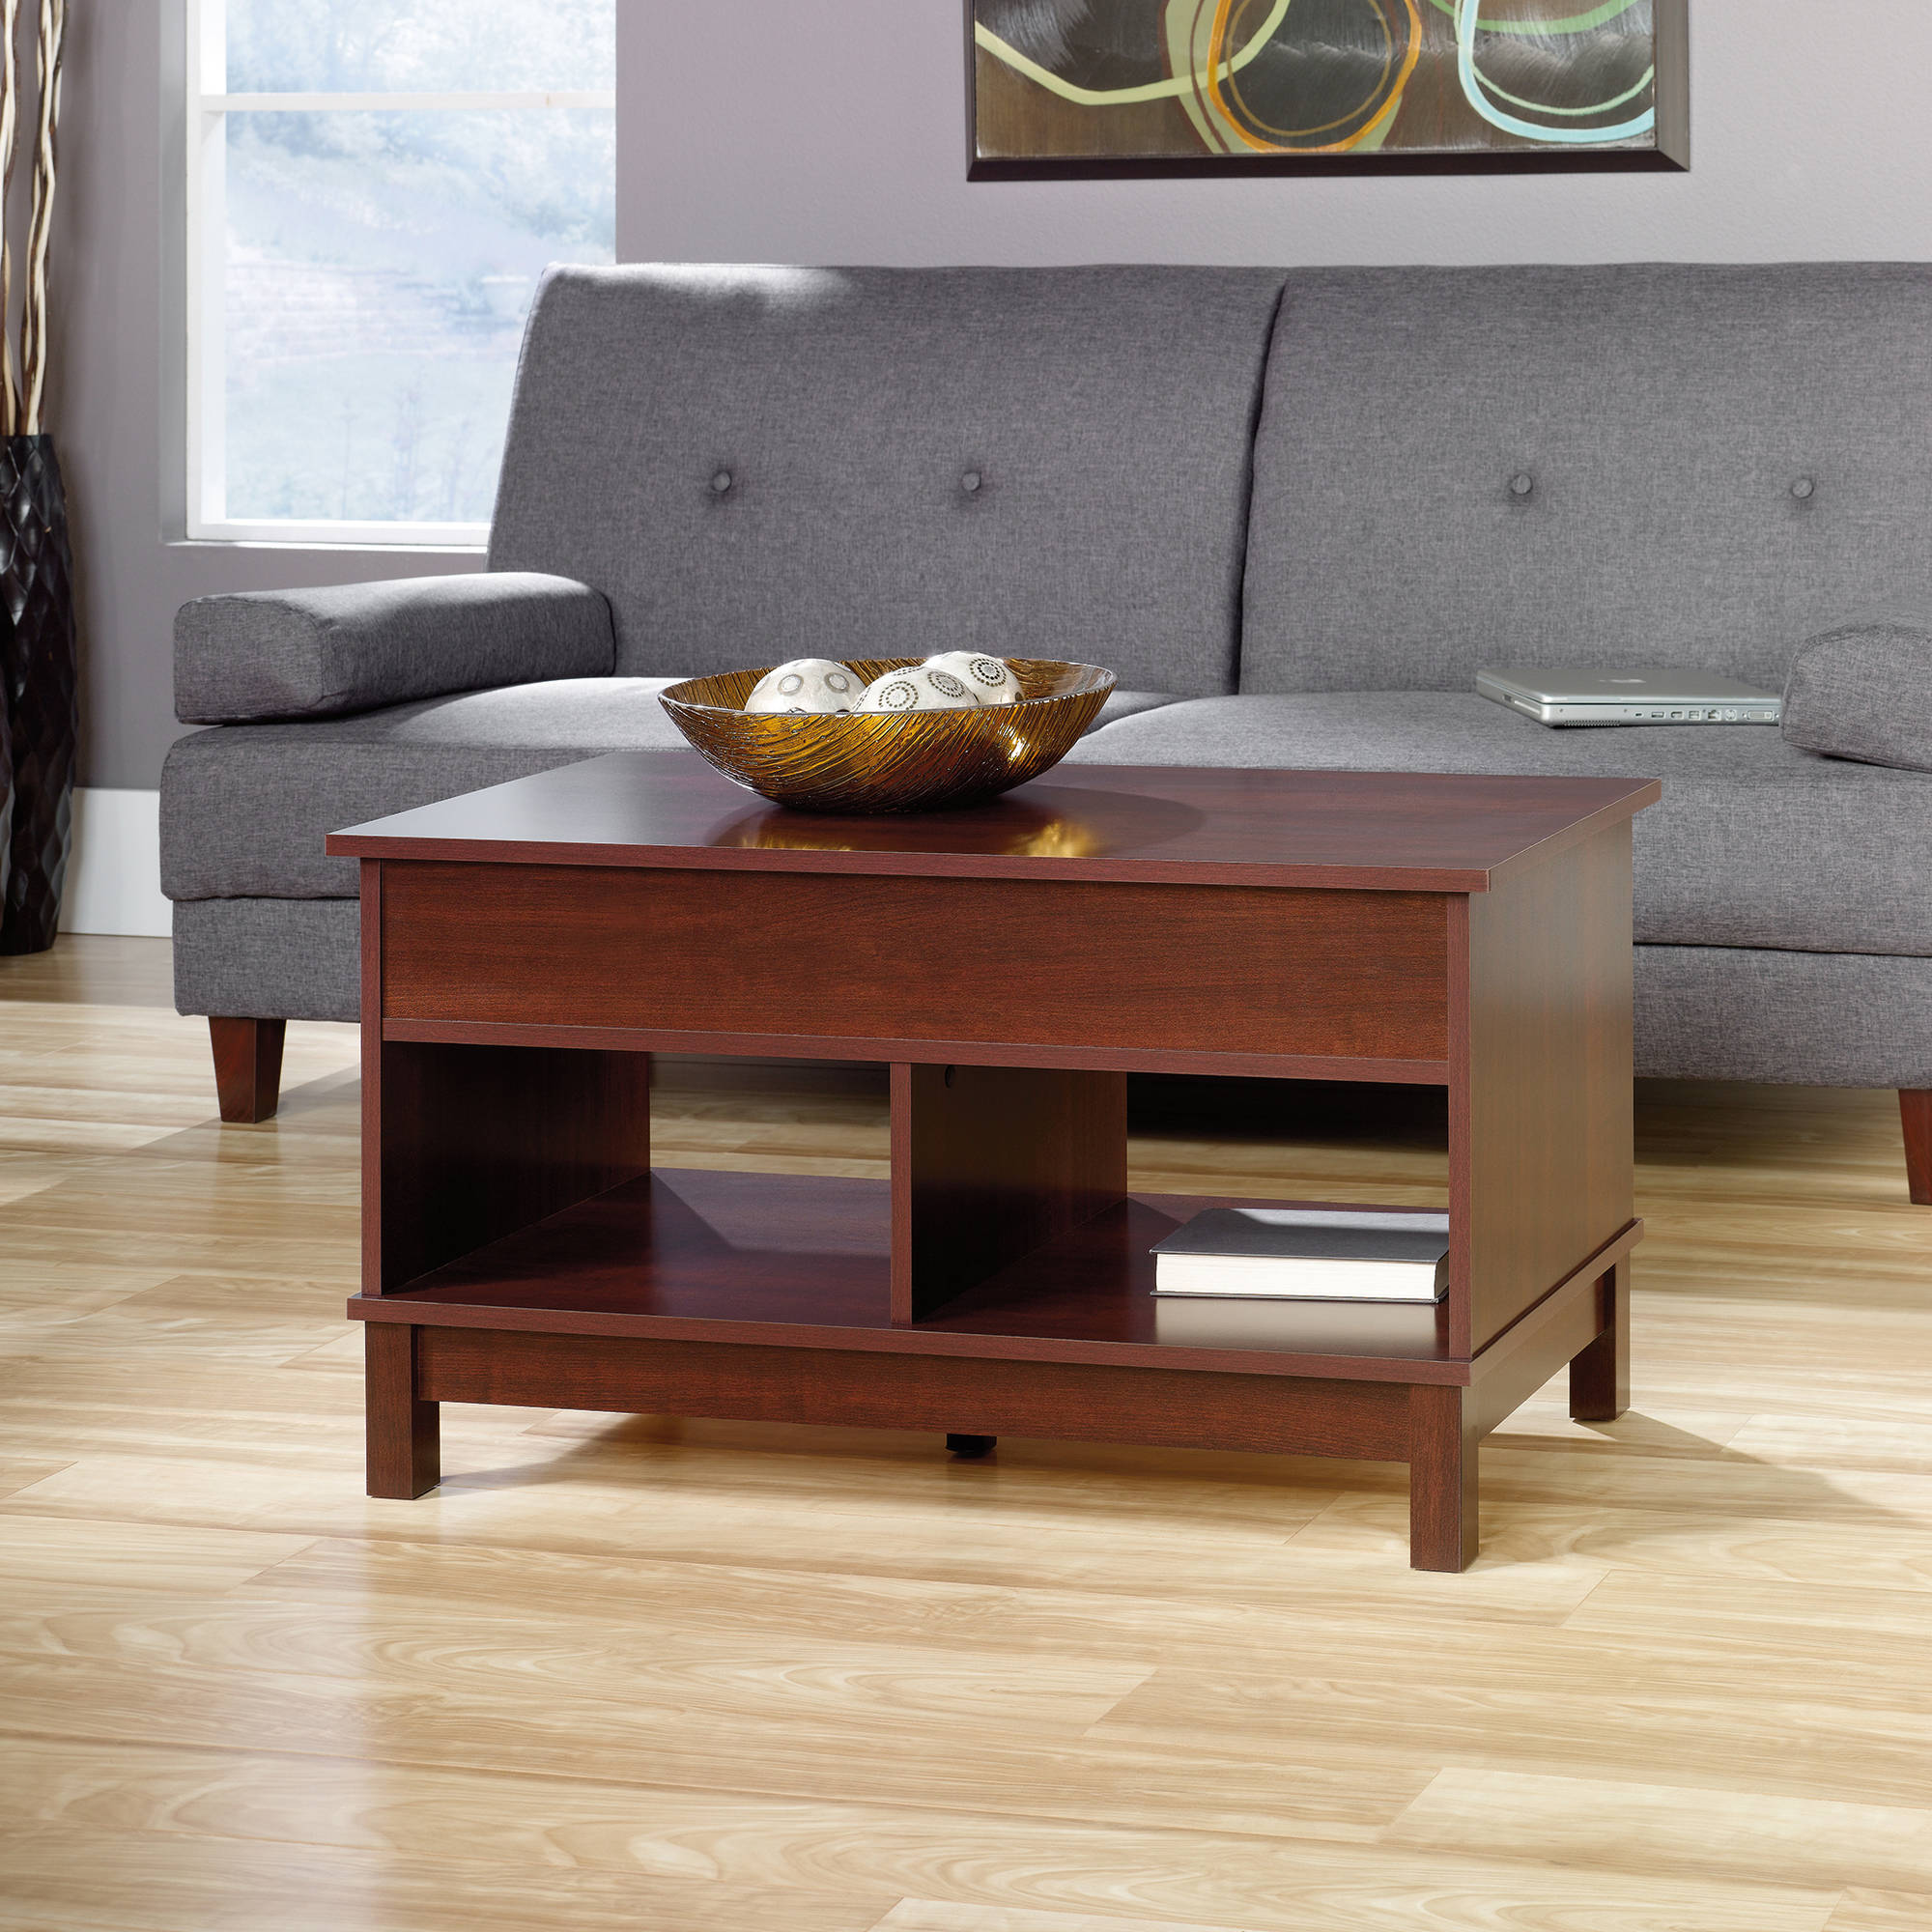 Better Homes and Gardens Ashwood Road Coffee Table Cherry Finish